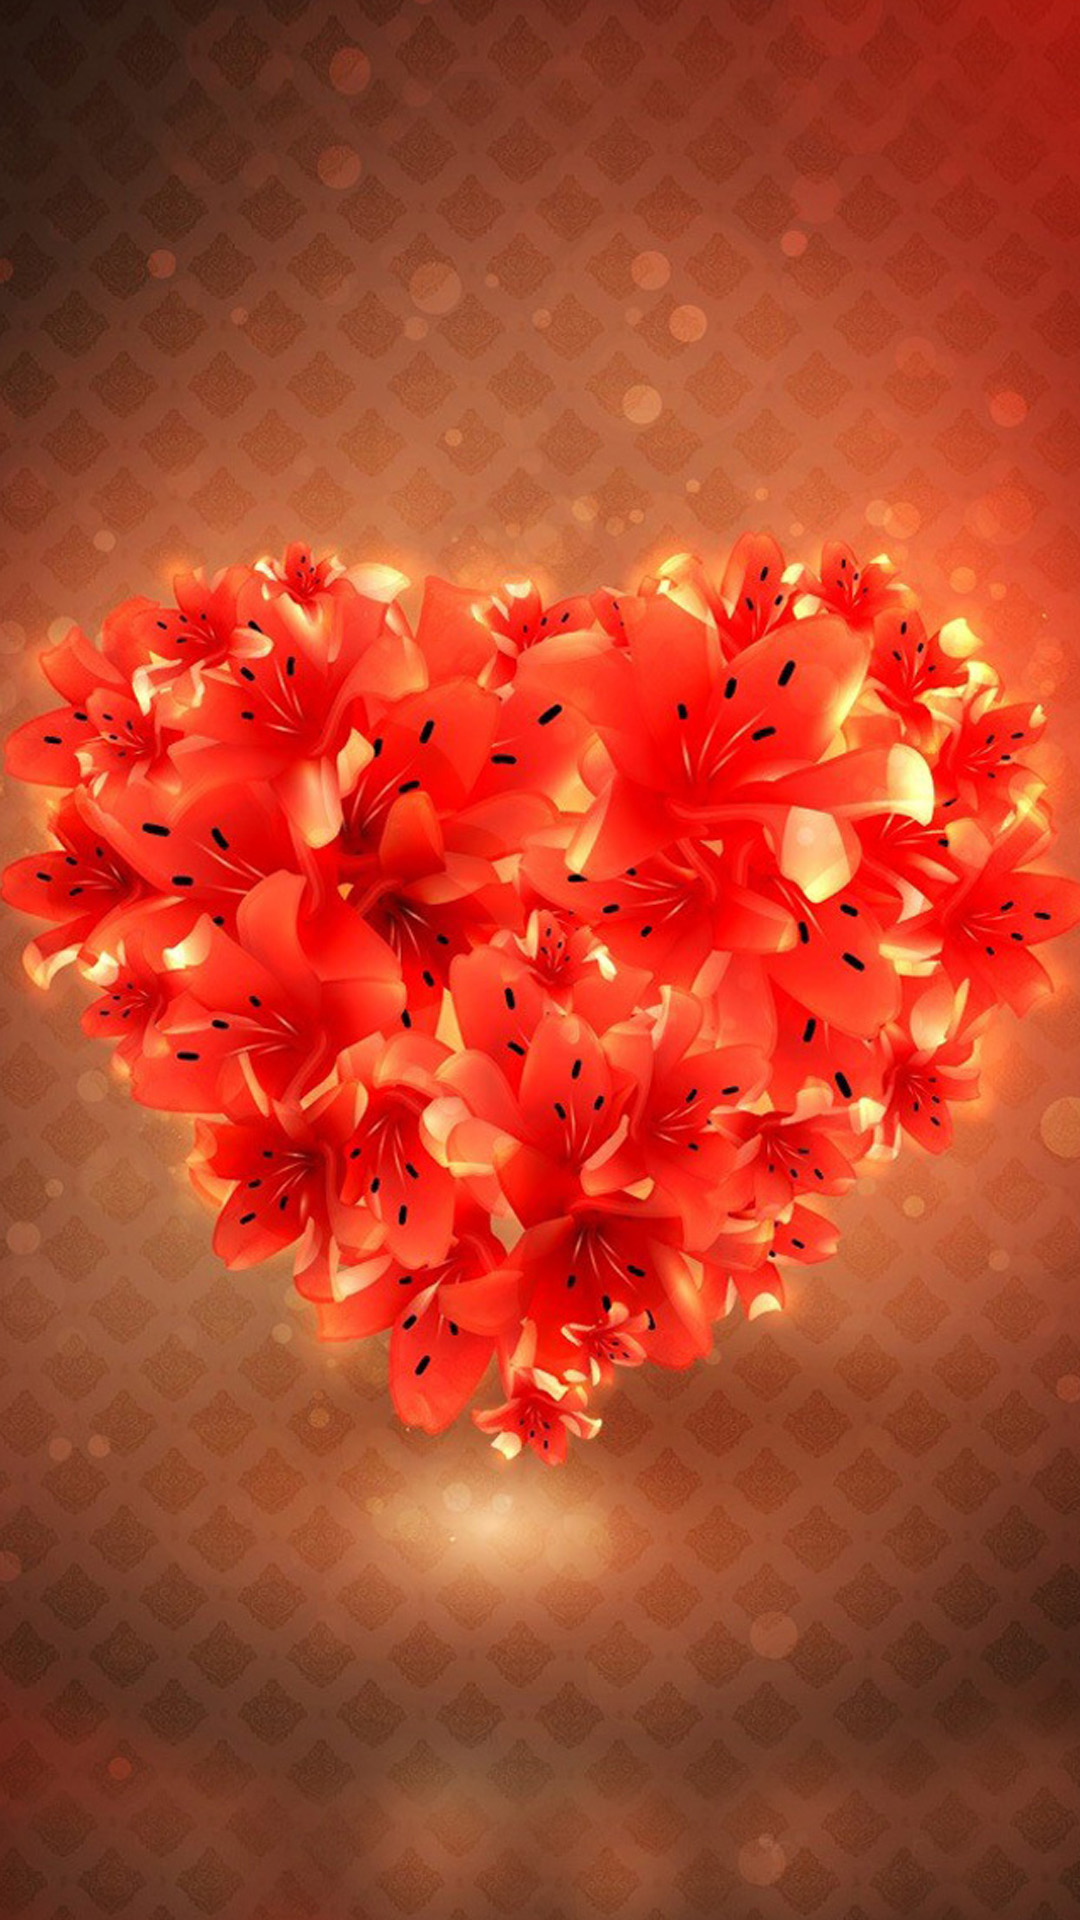 Flower Love Heart Wallpapers For Iphone